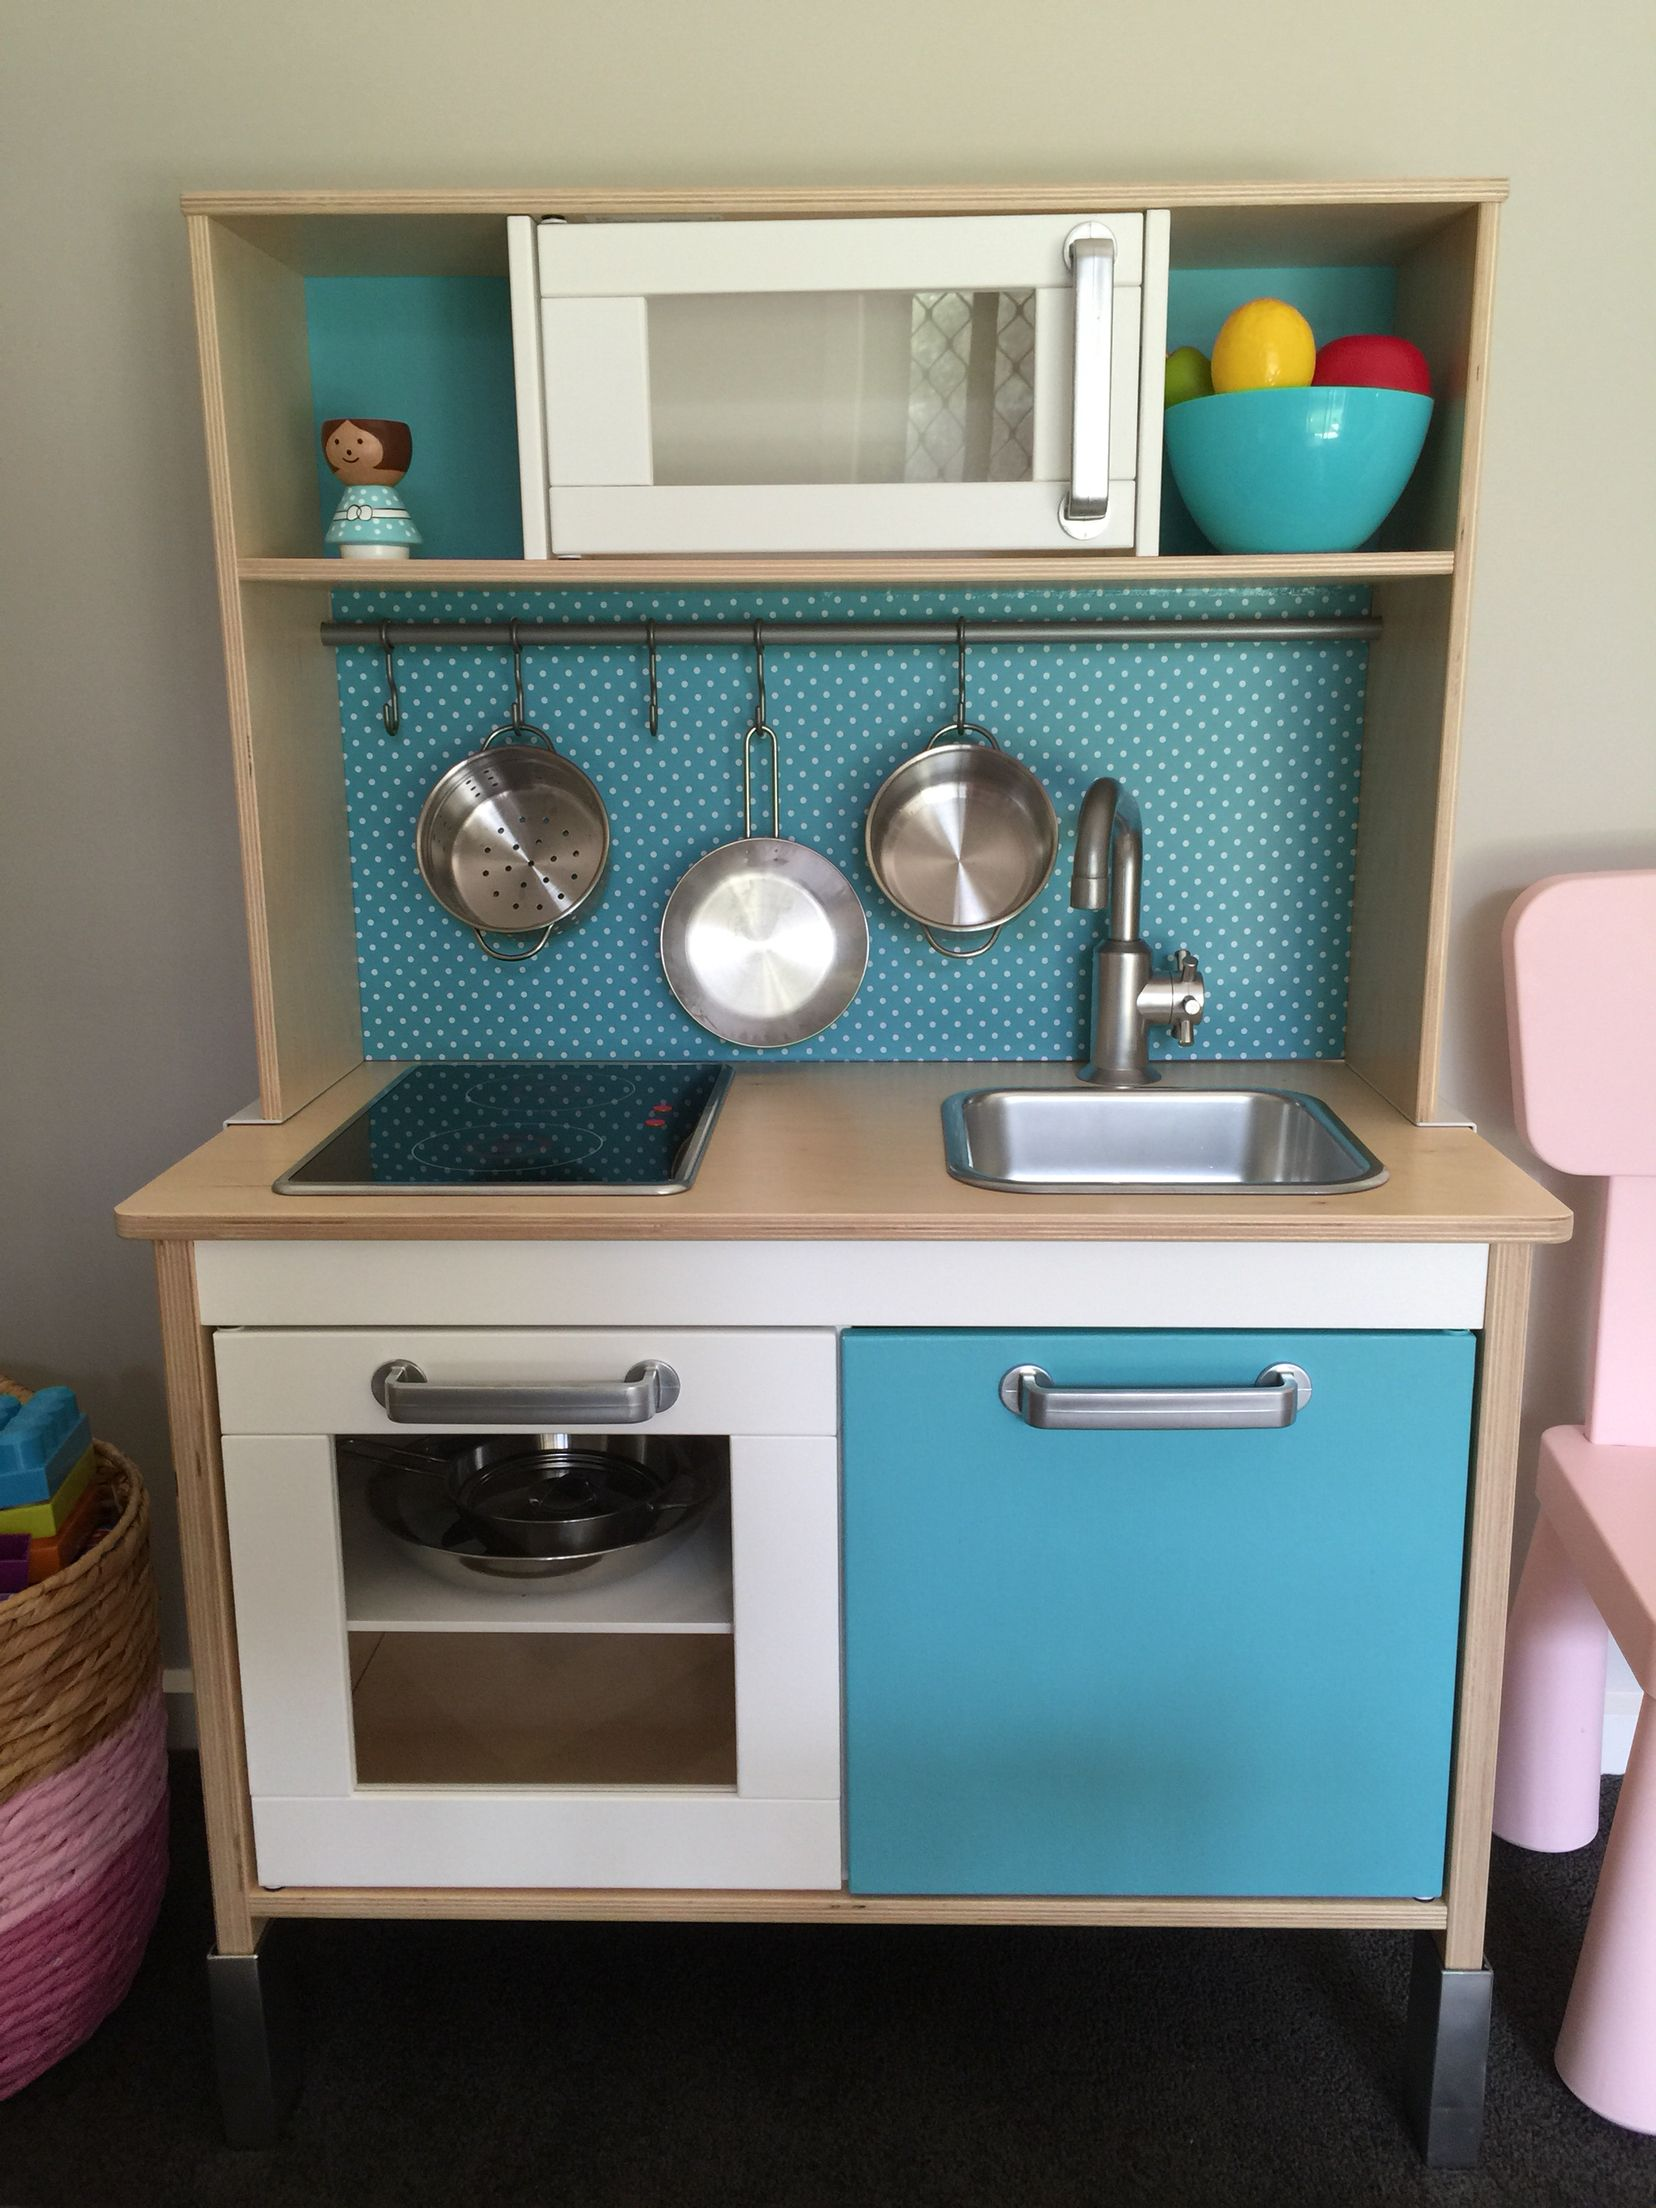 IKEA Duktig kitchen hack After being inspired by other